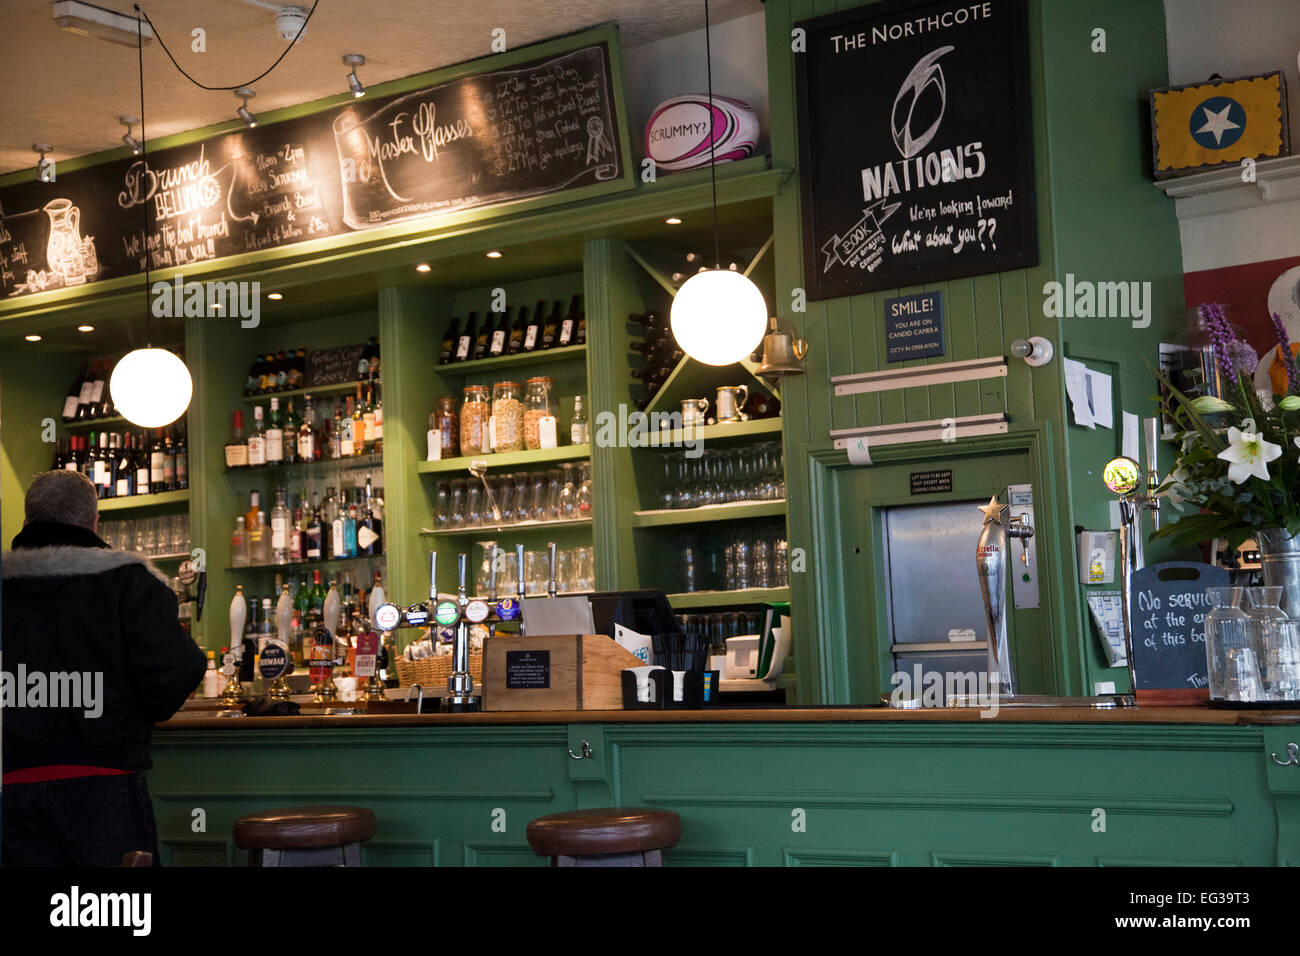 Northcote Rd Pub on Northcote Rd in Wandsworth/ Clapham -  London UK Stock Photo